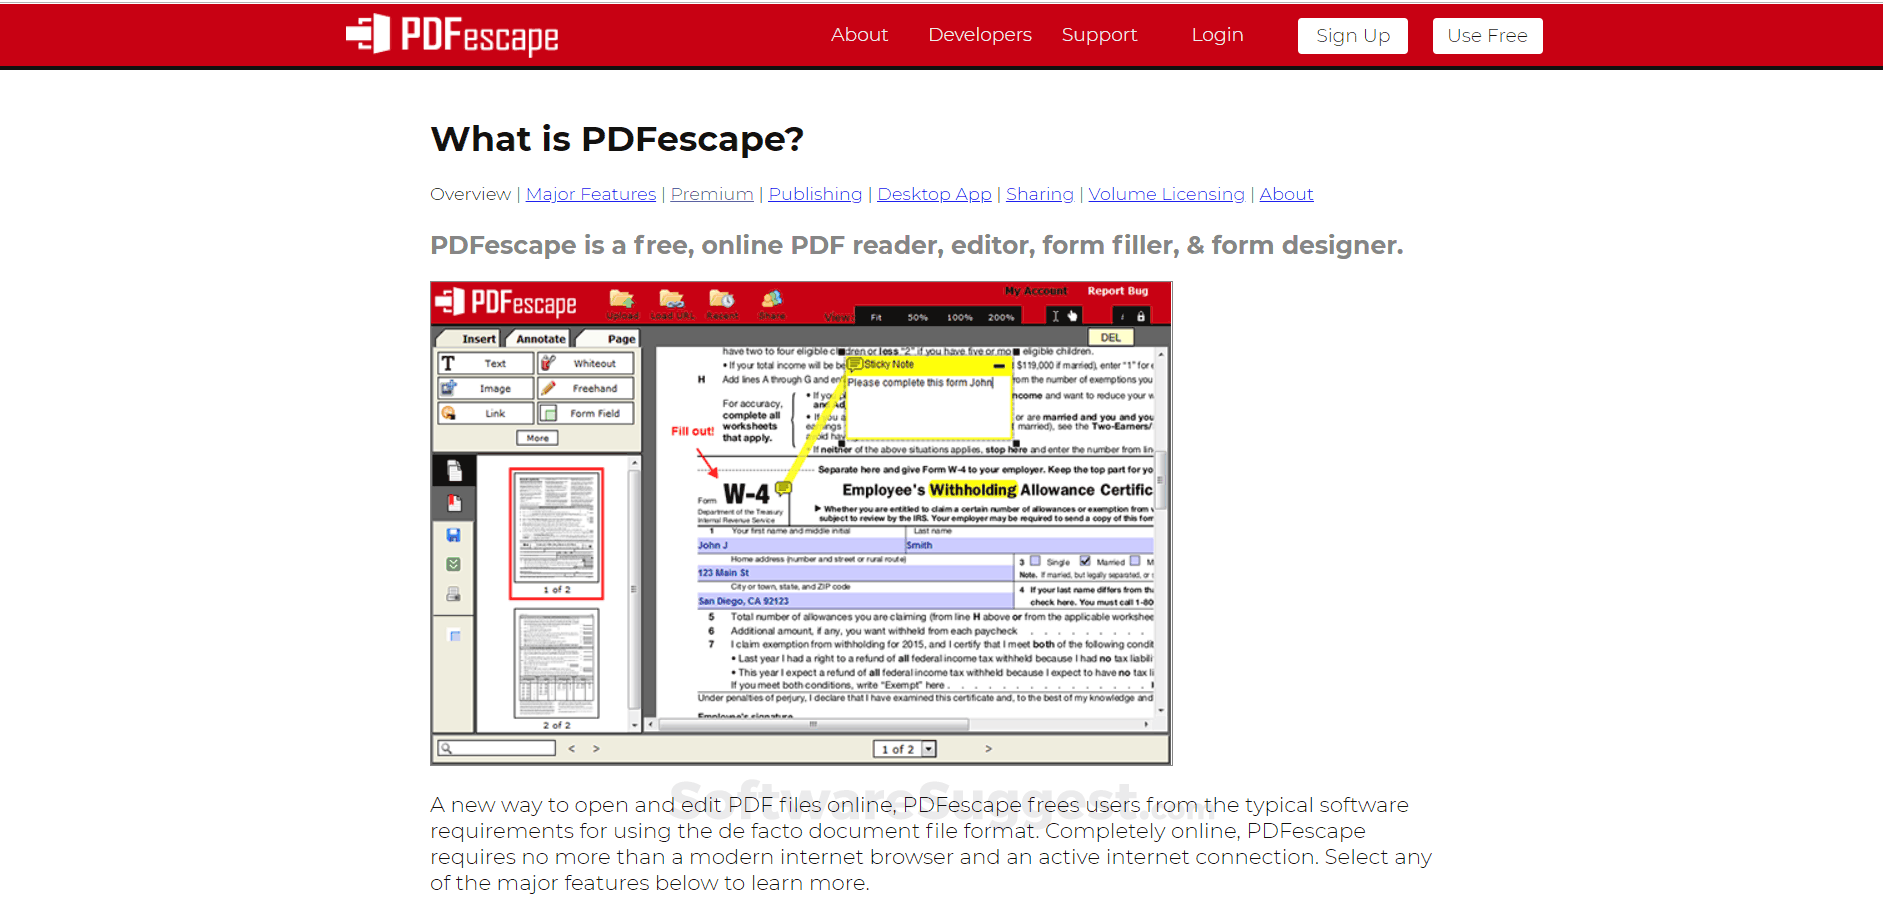 PDFescape Pricing, Features & Reviews 2019 - Free Demo